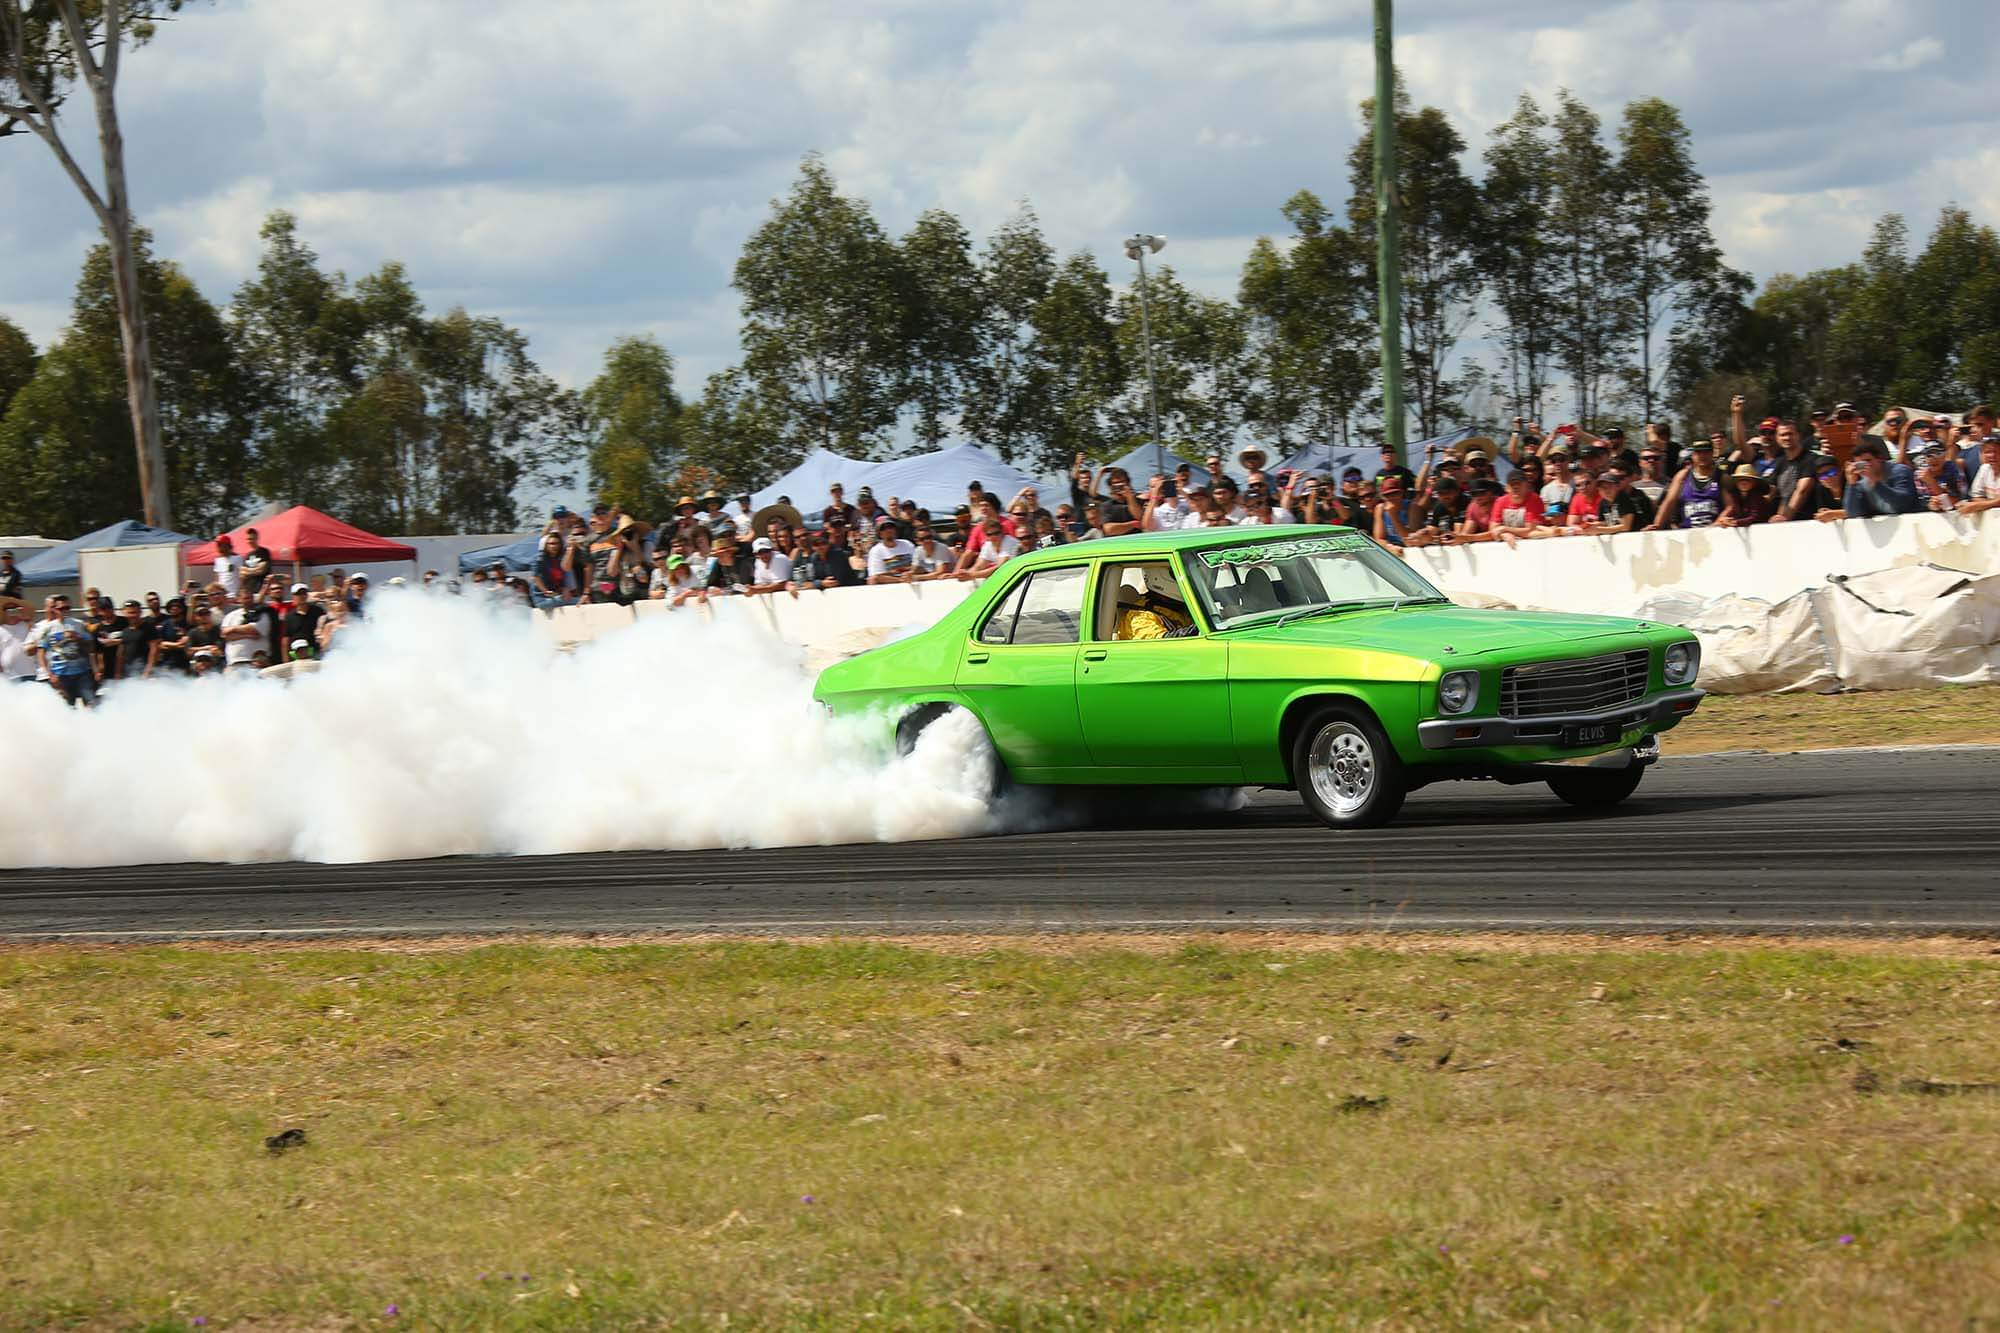 Powercruise #77 Queensland Raceway, Here's the handy info you need